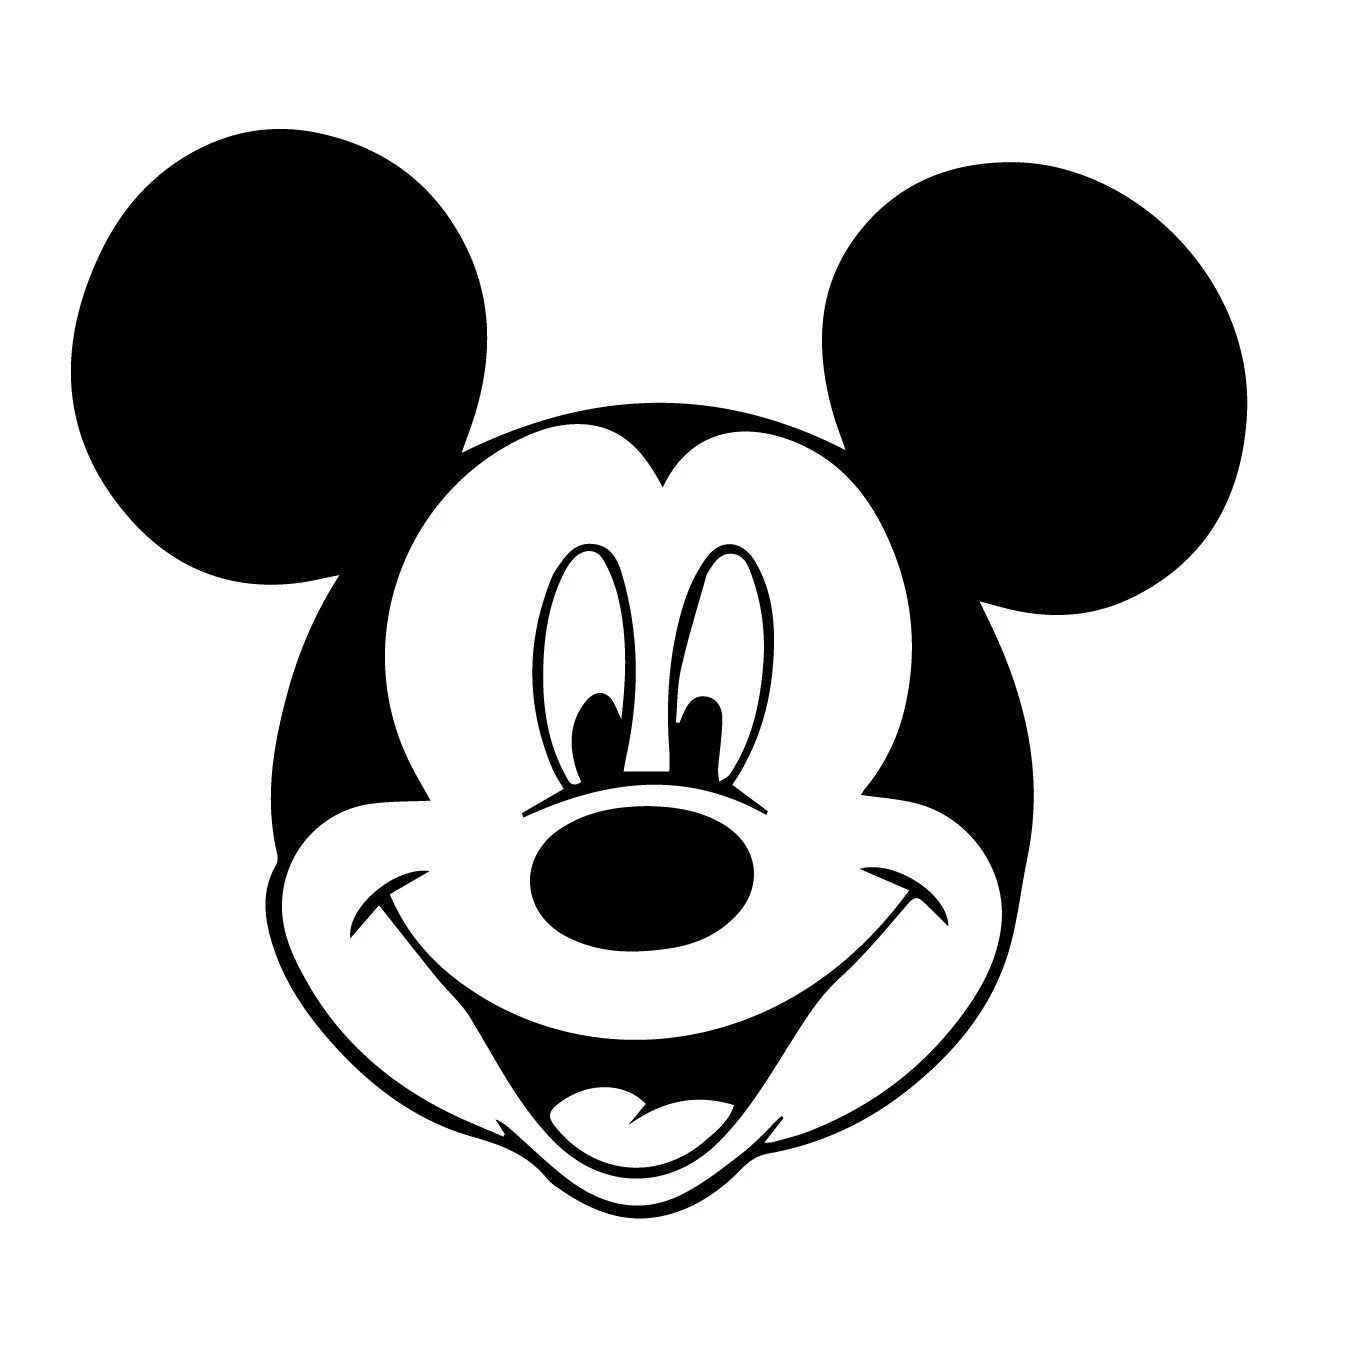 Mickey Mouse Tekenen Mickey Mouse Svgwalt Disney Eps Mickey Mouse